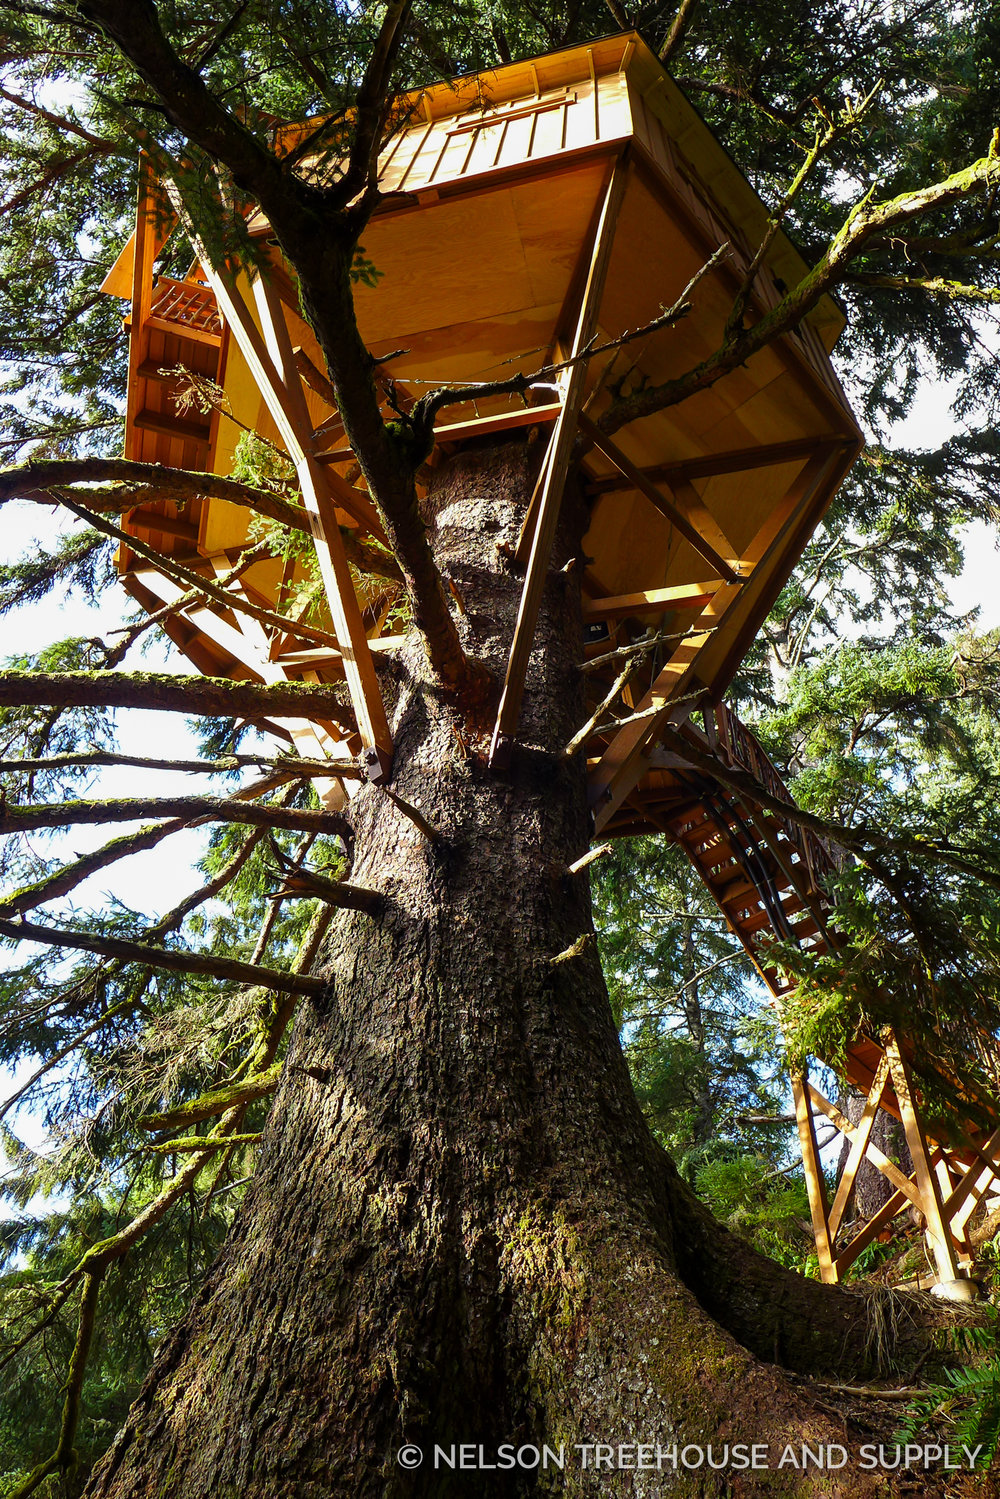 This orgeon Treehouse is an example of single-tree design.